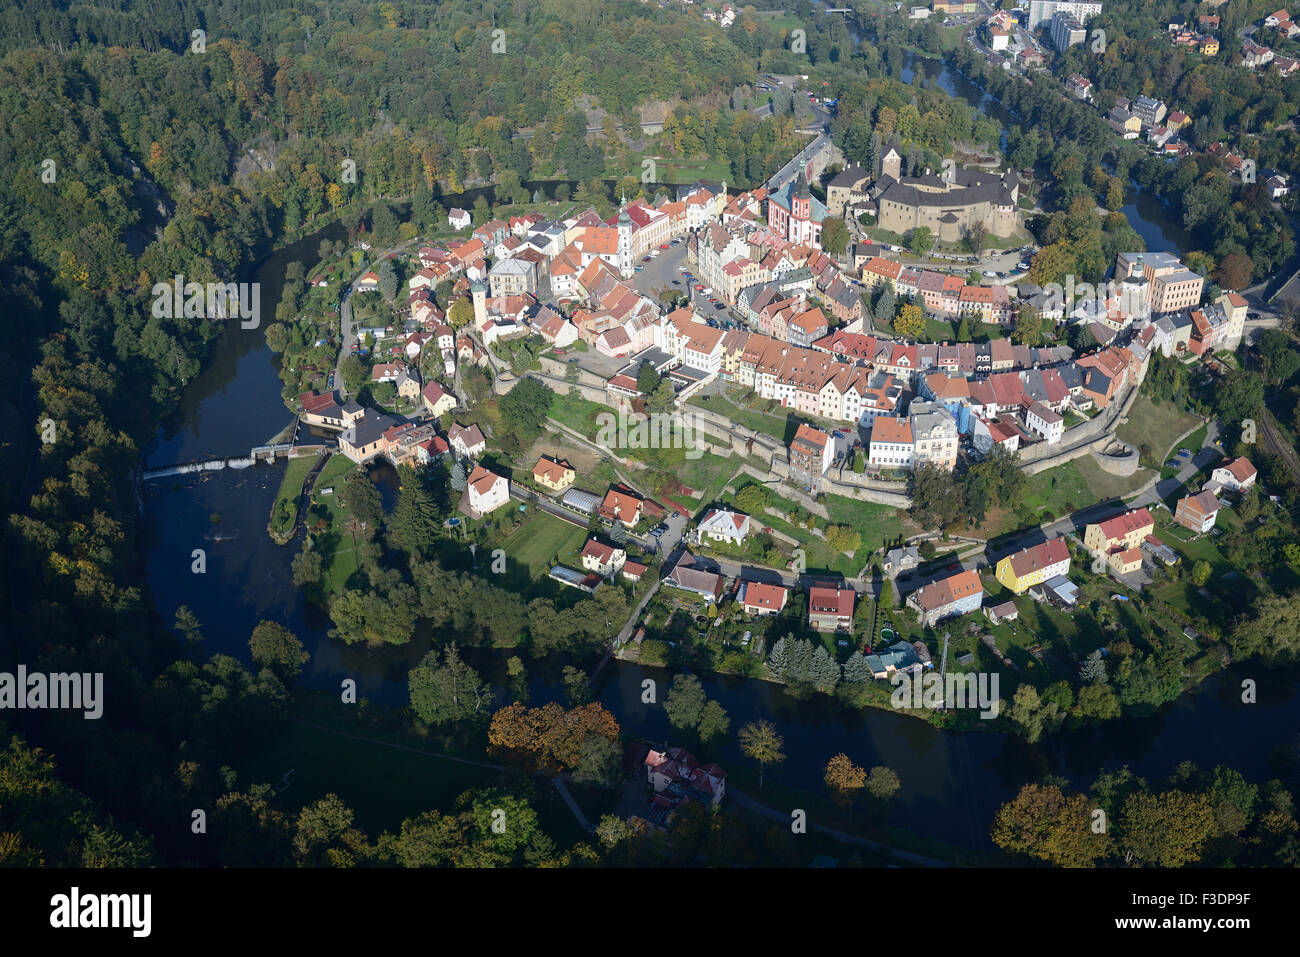 MEDIEVAL VILLAGE WITHIN A RIVER MEANDER (aerial view). Ohře River, Loket, Bohemia, Czech Republic. - Stock Image